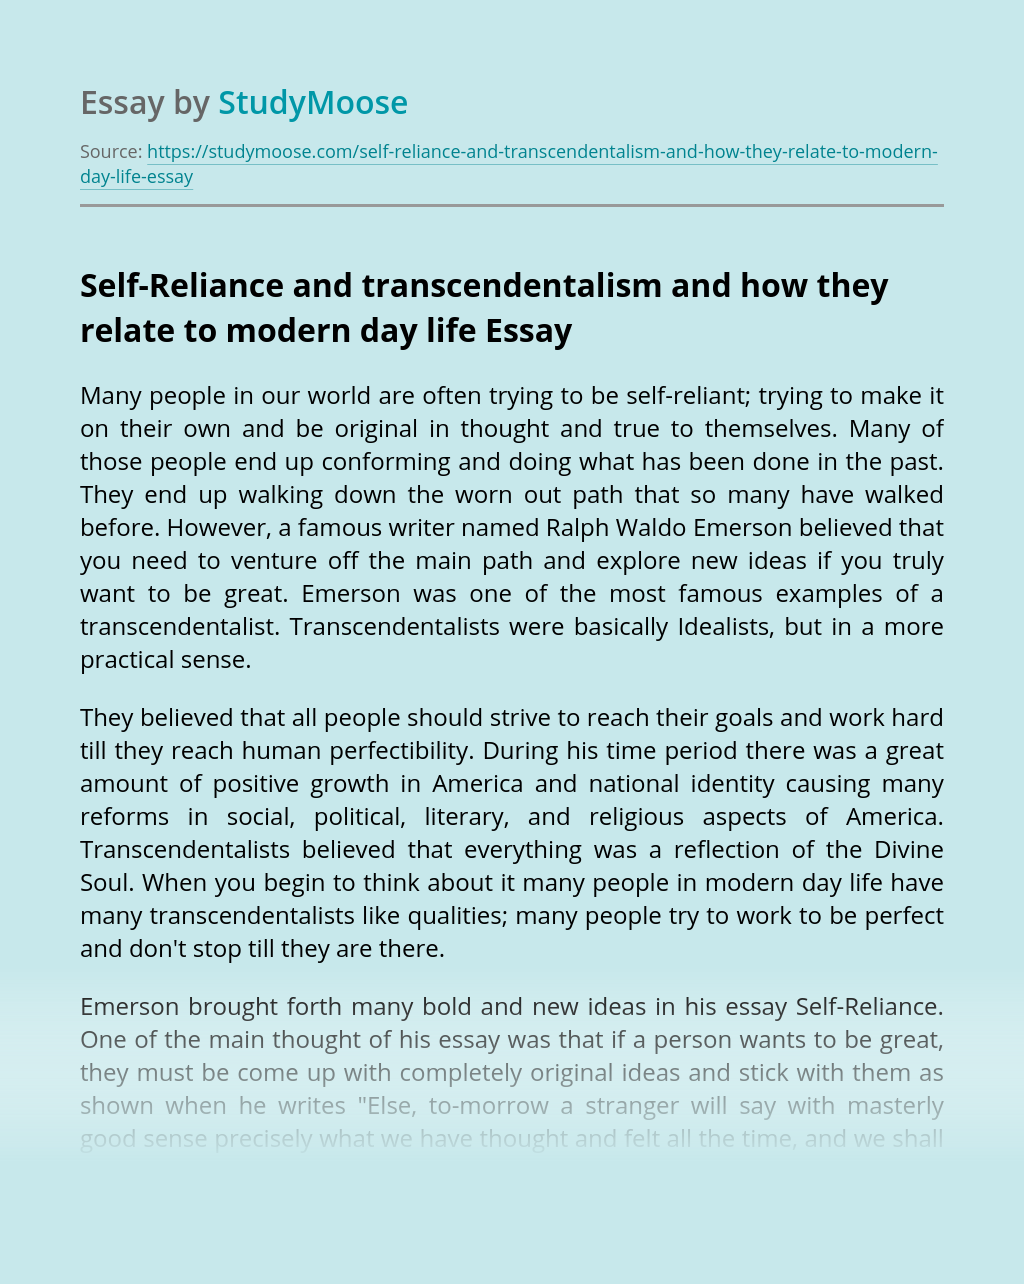 Self-Reliance and transcendentalism and how they relate to modern day life